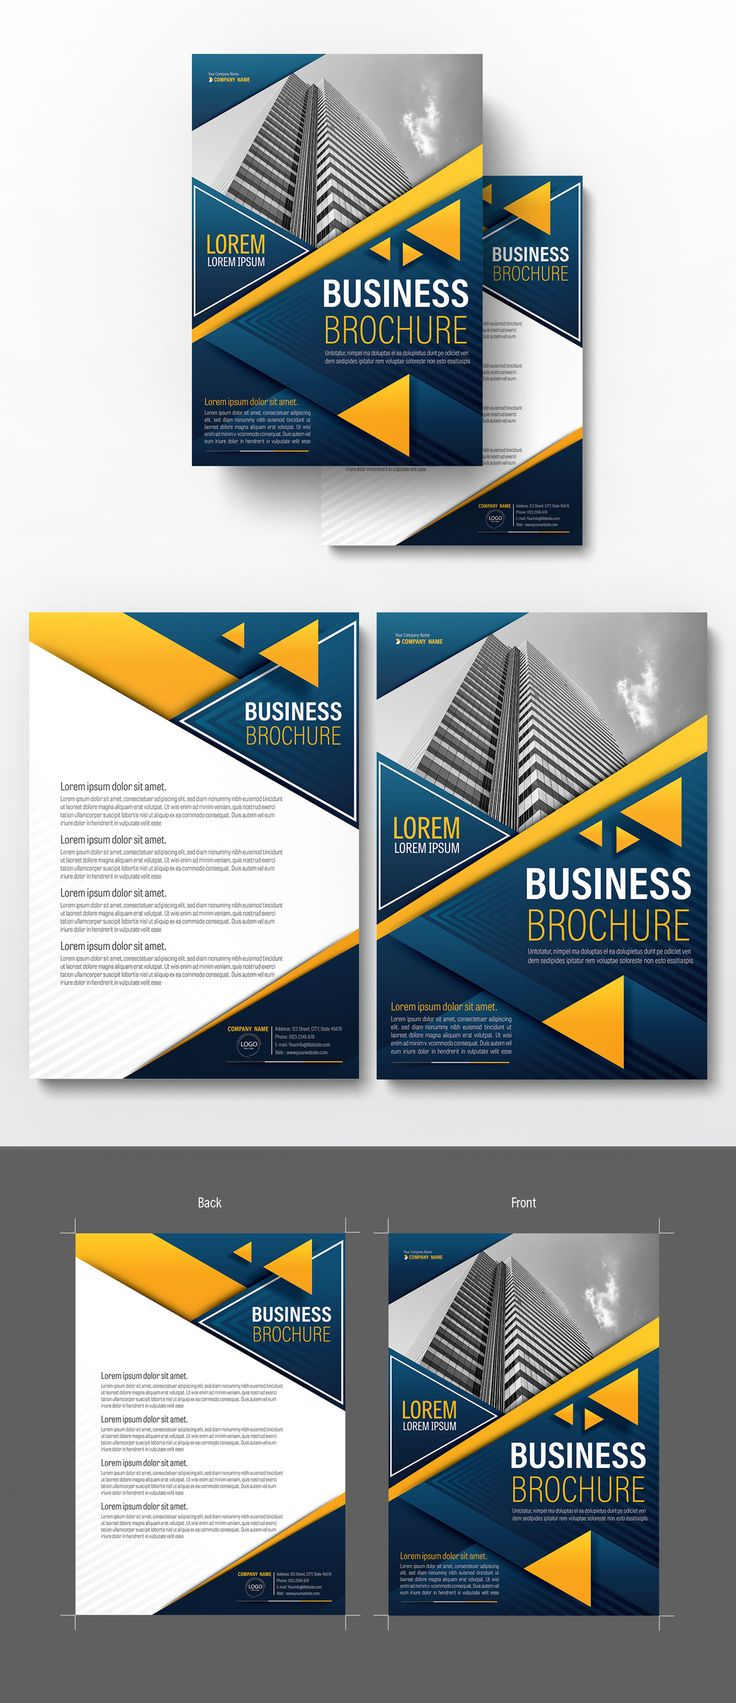 Brochure Cover Layout with Dark Blue and Orange Accents 4 - image | Adobe Stock  #Brochure #Business #Proposal #Booklet #Flyer #Template #Design #Layout #Cover #Book #Booklet #A4 #Annual #Report| Brochure template | Brochure design template | Flyers | Template | Brochures | Flyer Background | Background design | Business Proposal | Proposal Design | Booklet | Professional | Professional - Proposal - Brochure - Template